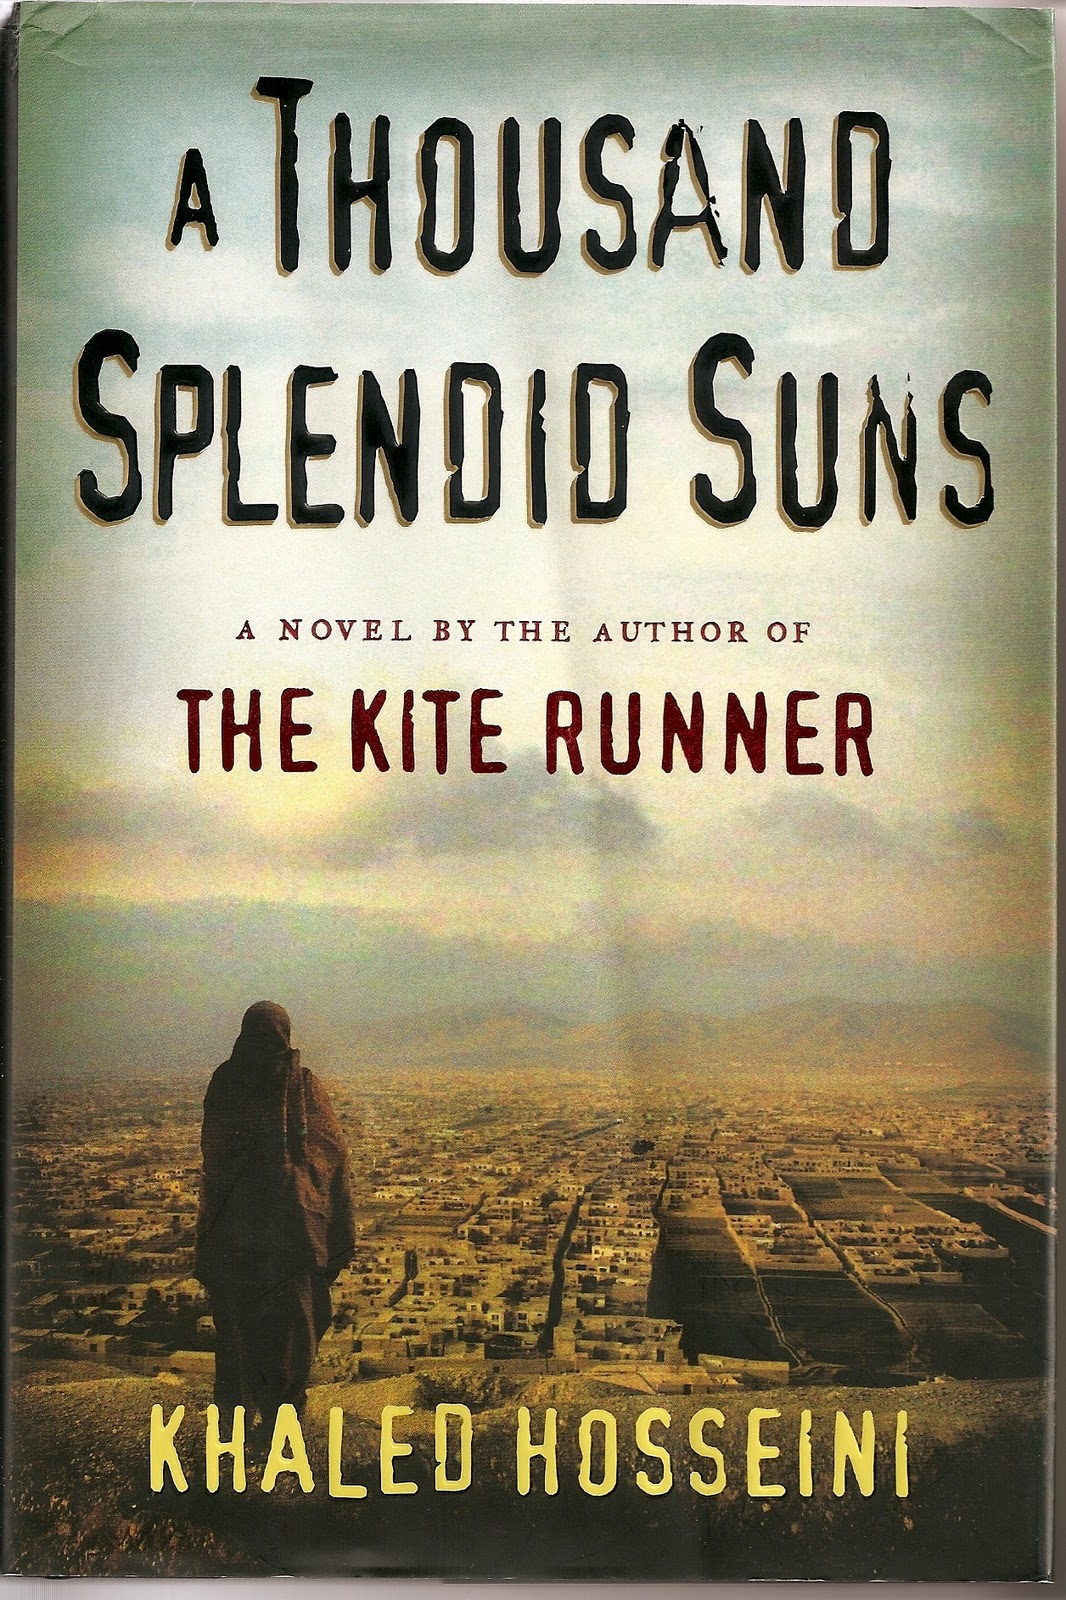 Excerpt: 'A Thousand Splendid Suns'